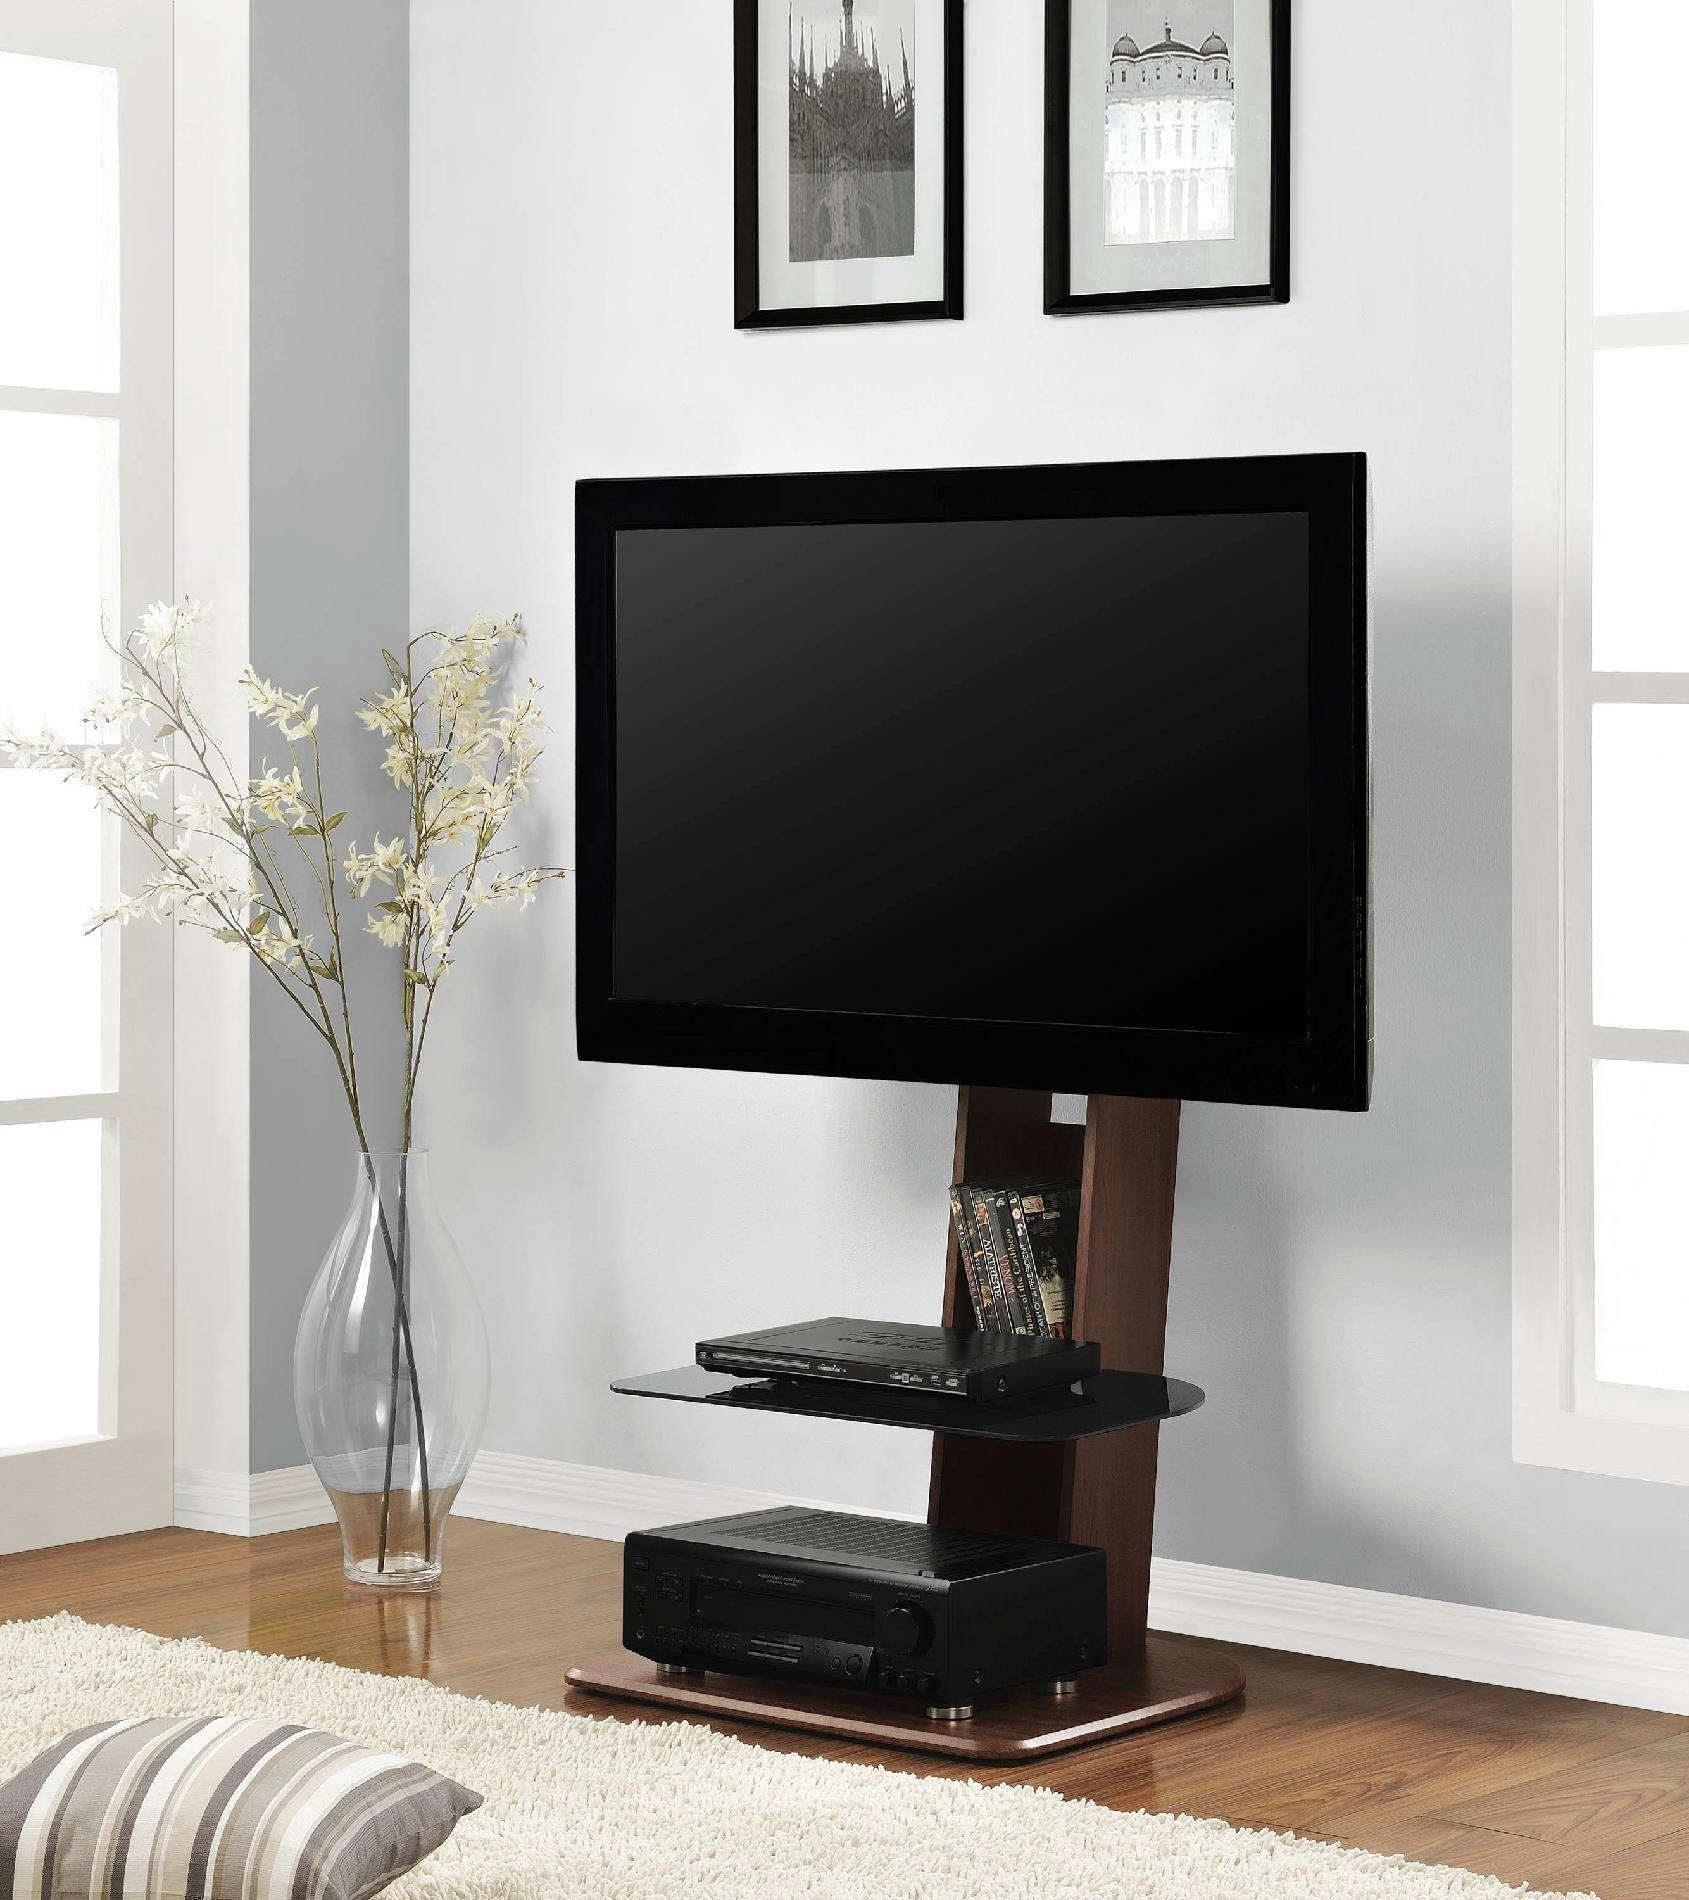 Elegant Free Standing Tv Stand 53 On Online With Free Standing Tv regarding Skinny Tv Stands (Image 5 of 15)